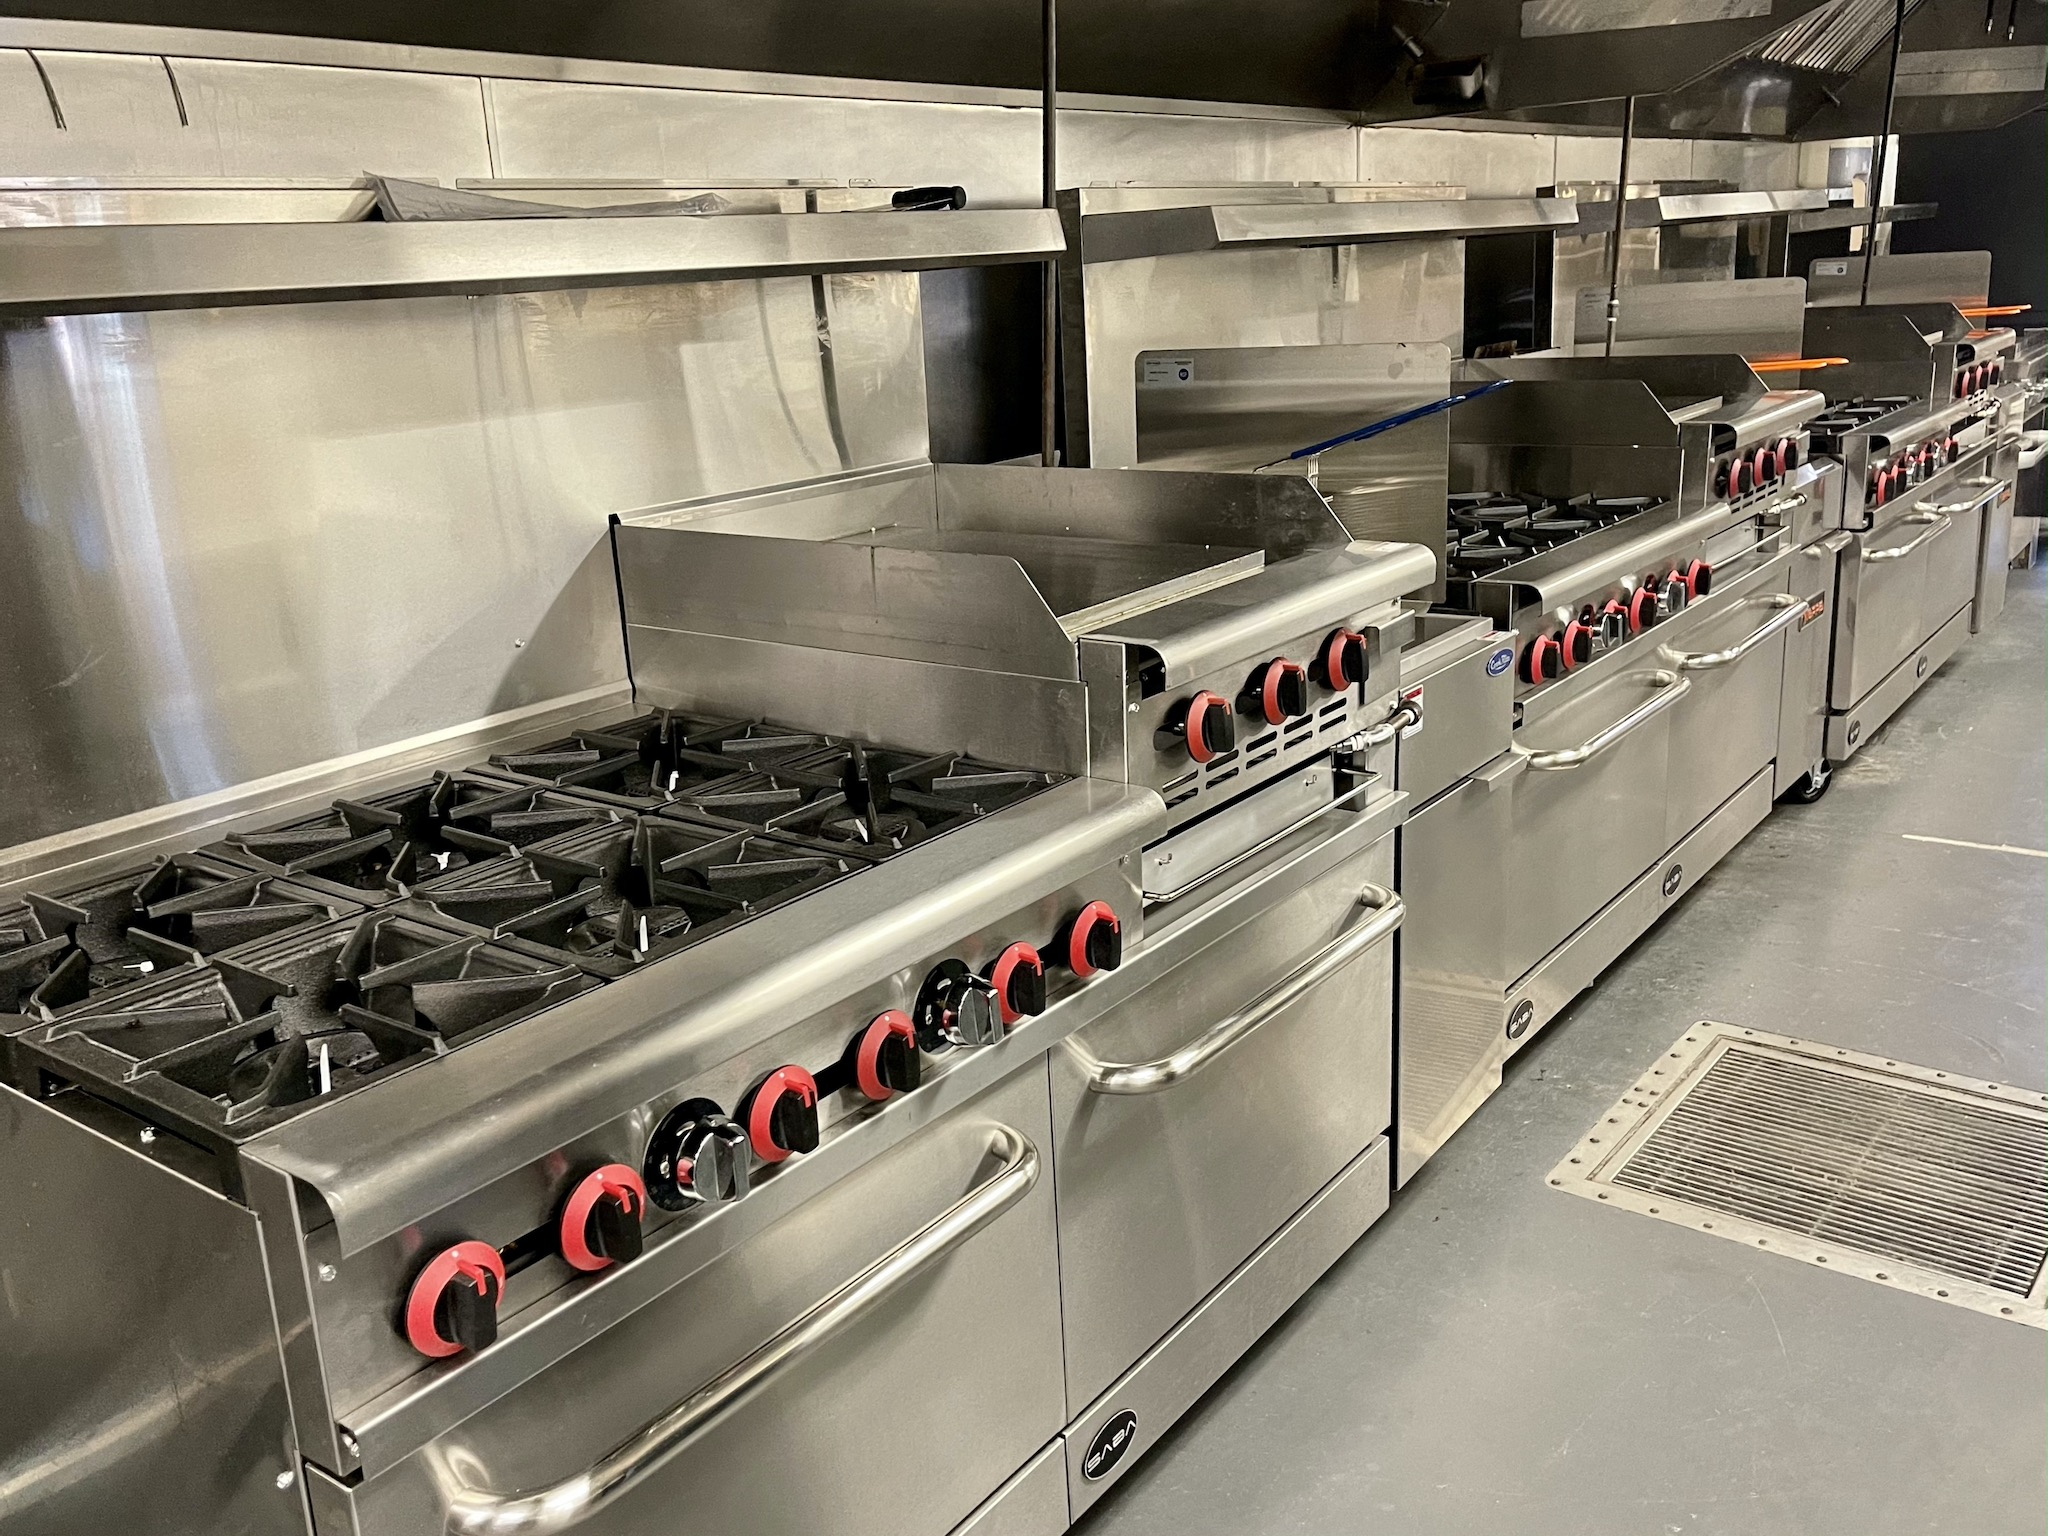 22 South Brand New Gas Stoves